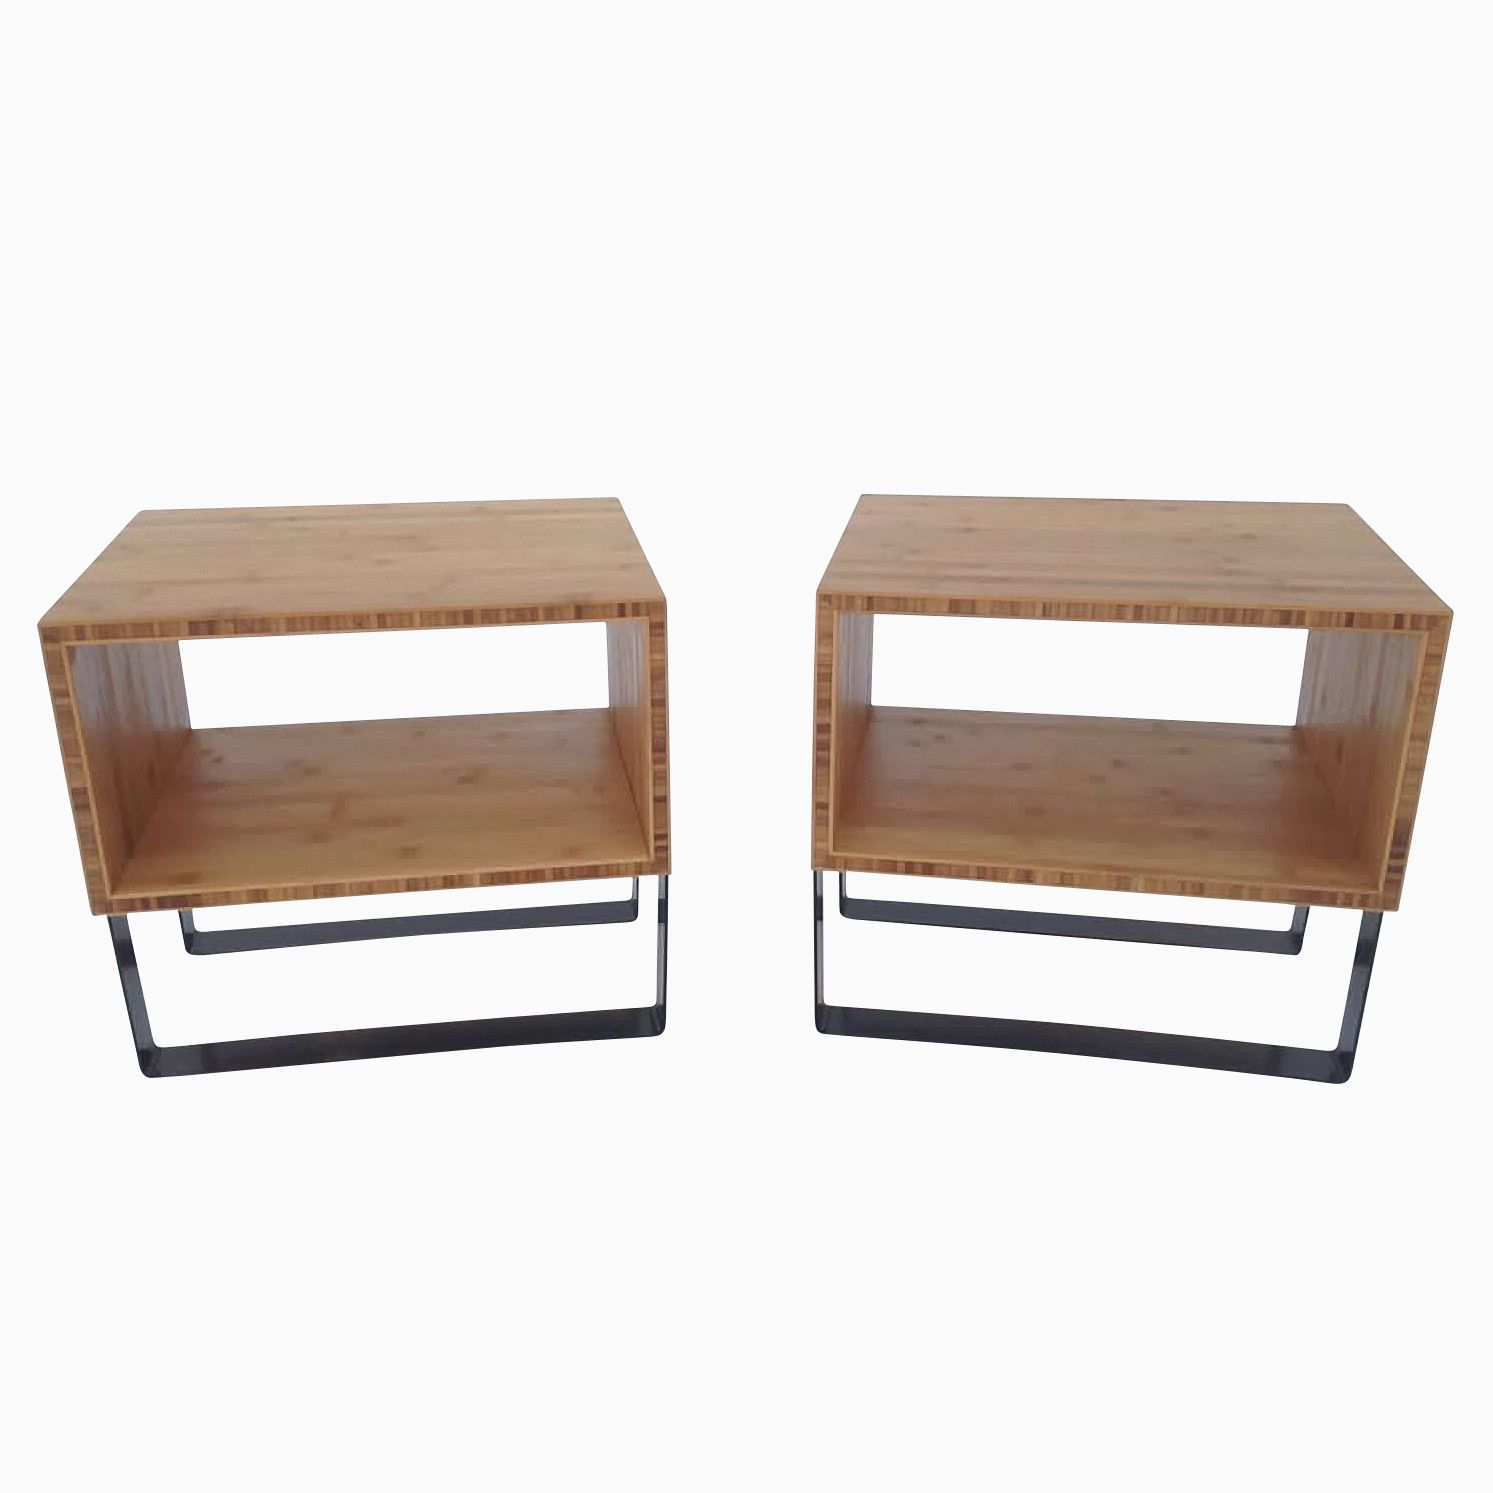 Modern Bedside Tables | West Elm Night Stand | Low Bedside Tables